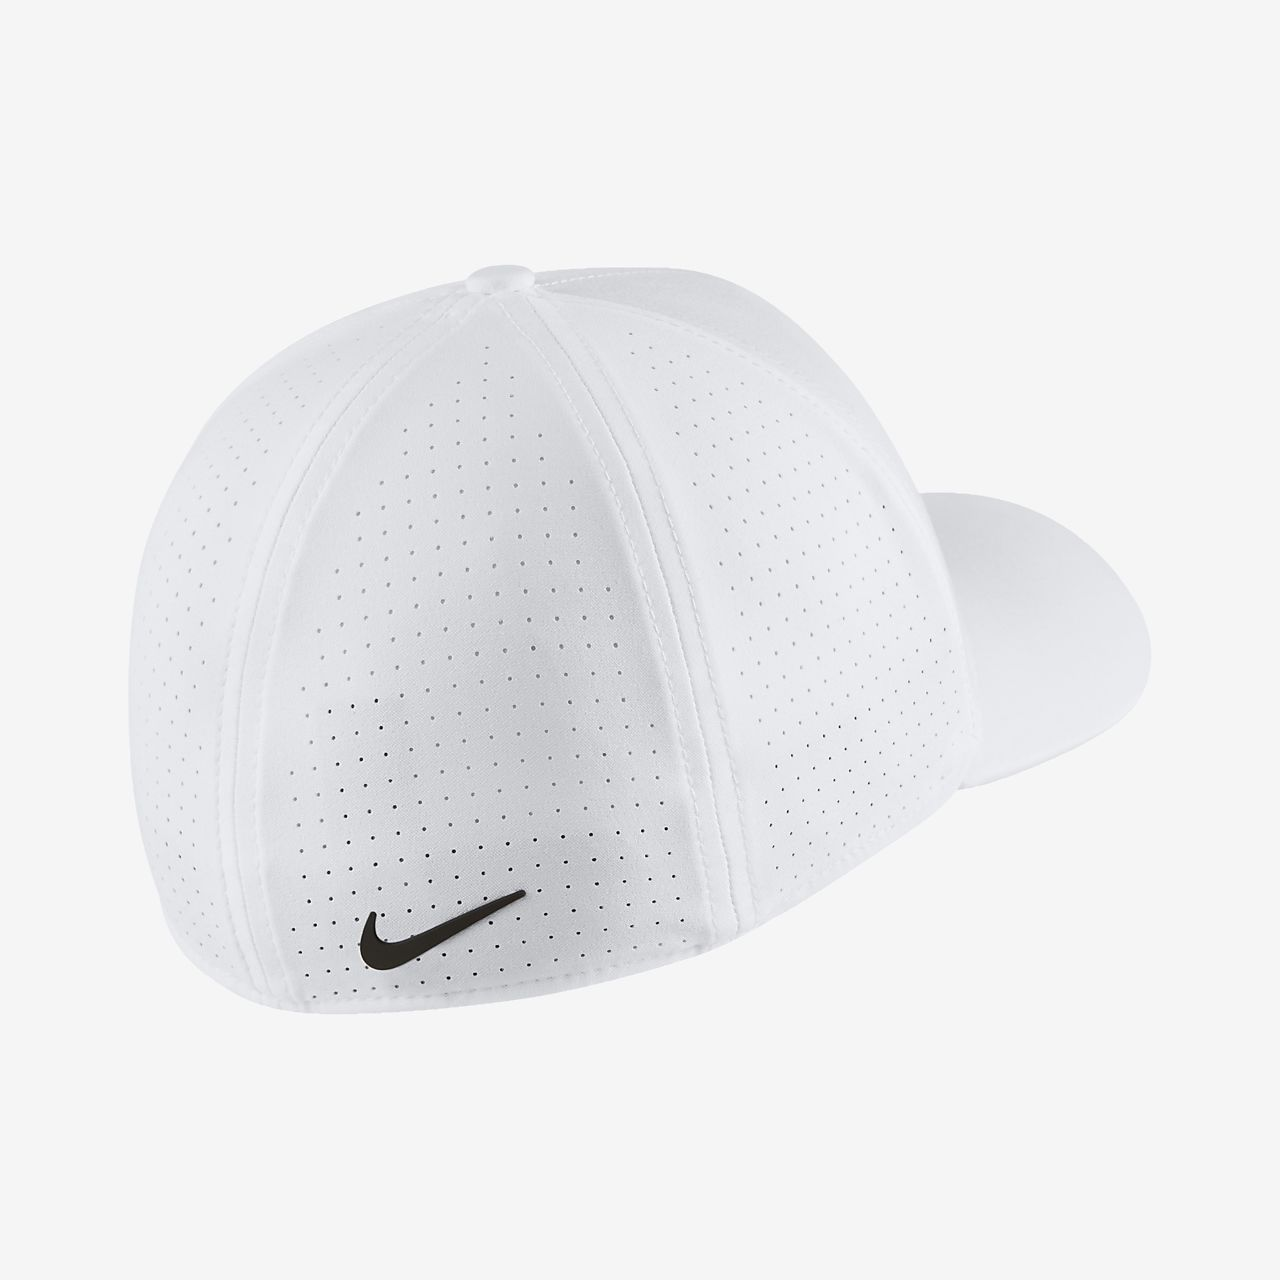 5428c4c338ada TW AeroBill Classic 99 Fitted Golf Hat. Nike.com NL